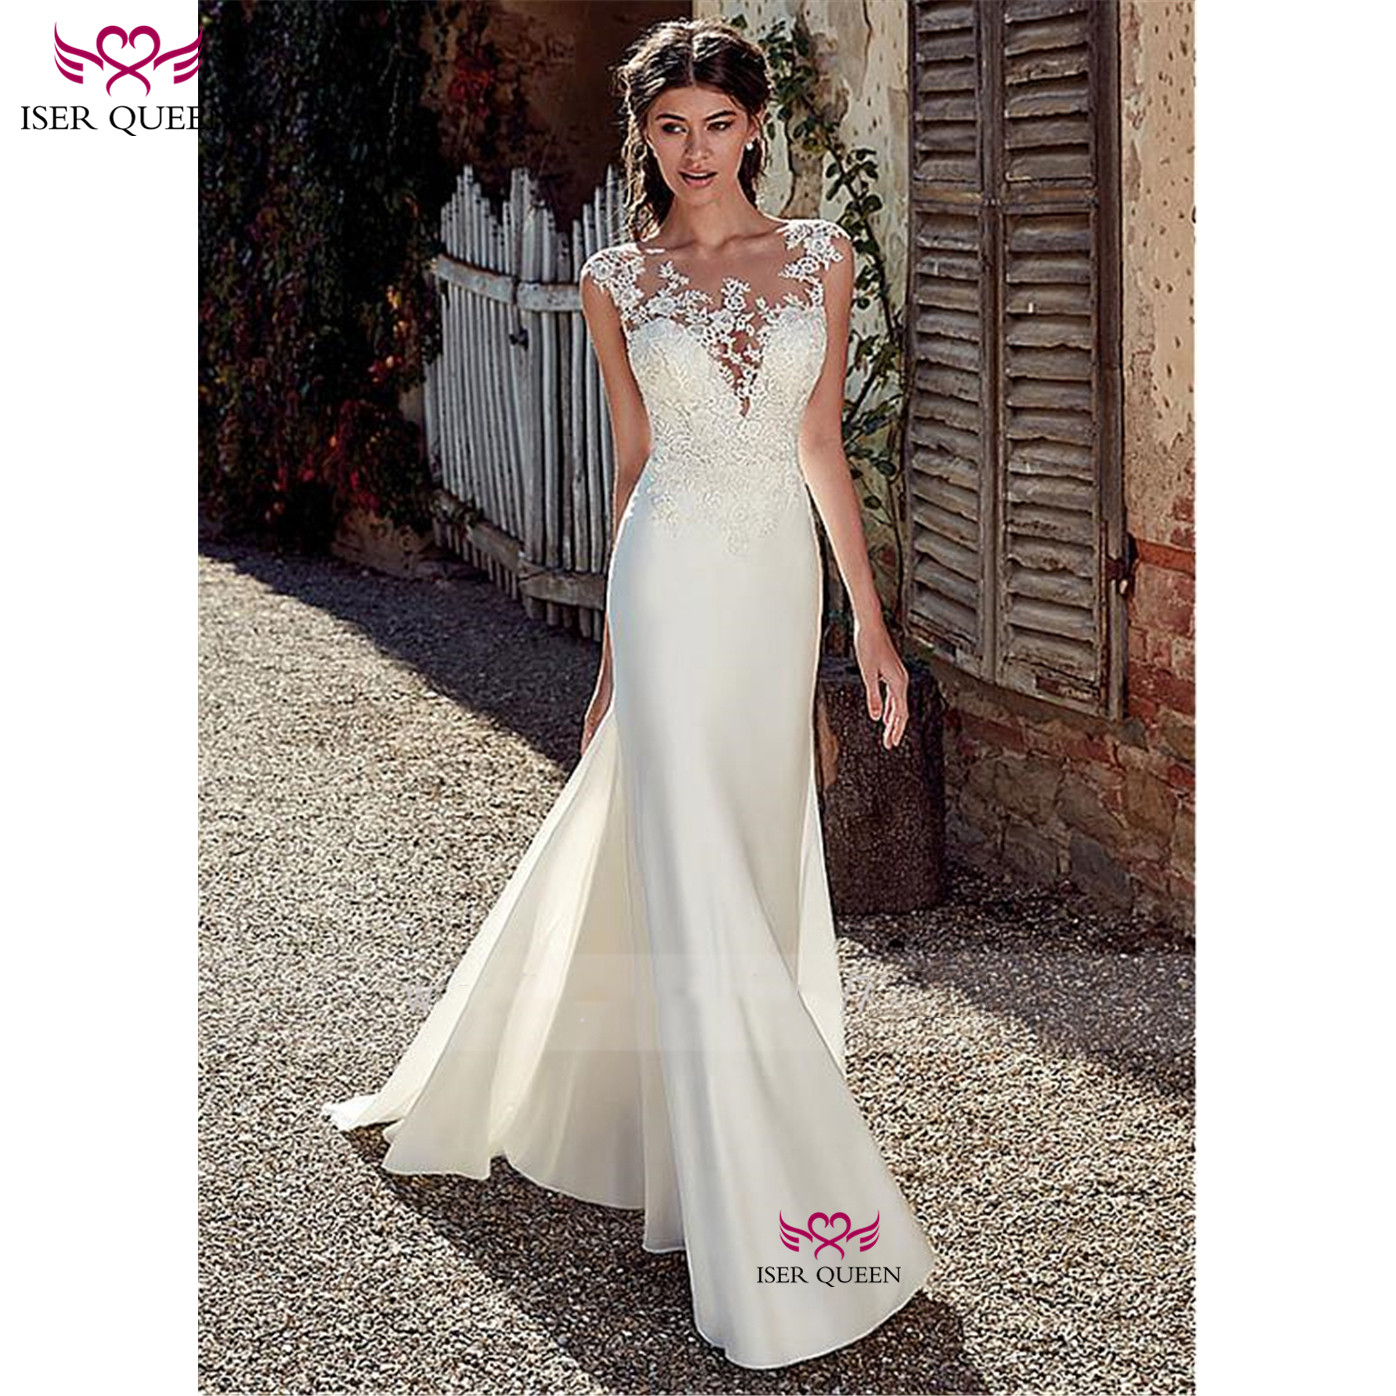 New Europe Style Satin Mermaid Wedding Dress Embroidery Lustrous Satin Deep V-neckline Vestido De Noiva Ivory Bride Dress W0517